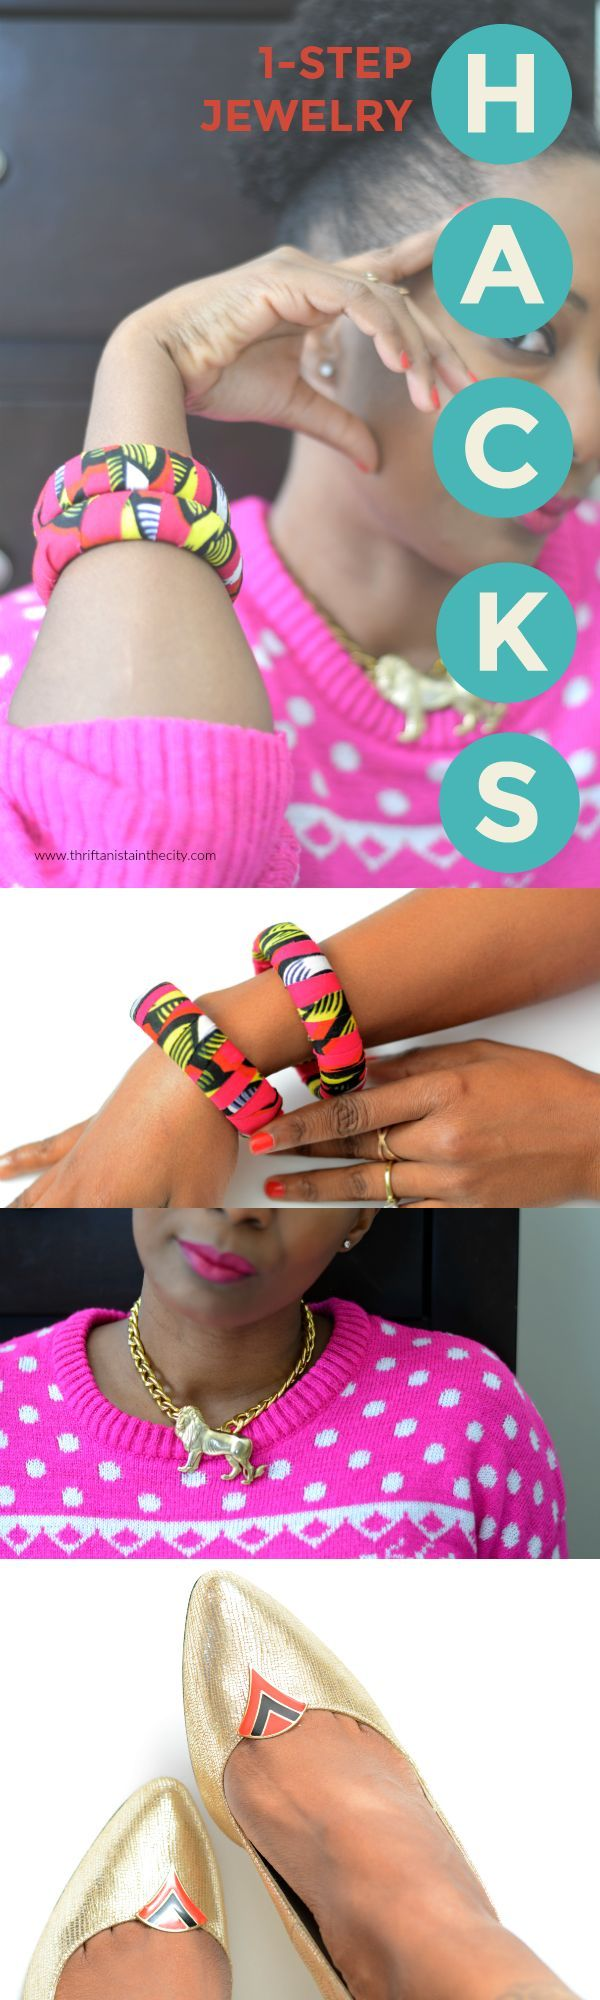 Simple hacks to update, refashion and repurpose old thrift store jewelry.  Make colorful diy african fabric bracelets. Add vintage pins to a chain for a fab statement necklace. Use clip-on earrings to embellish shoes. DIY jewelry